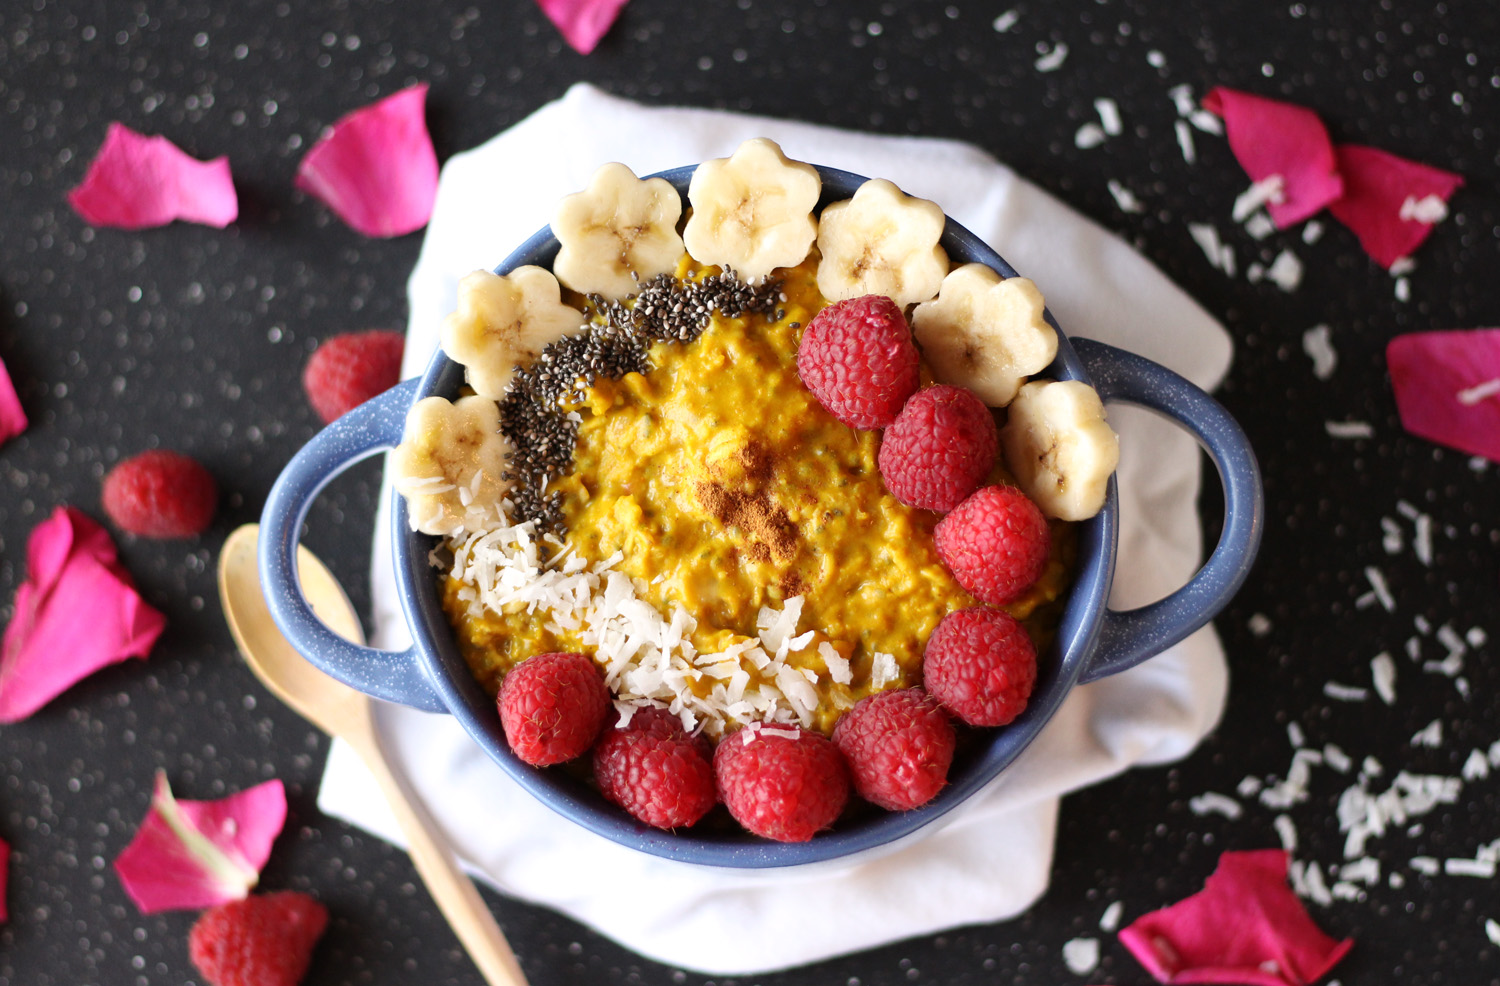 Glowing Golden Turmeric Oatmeal